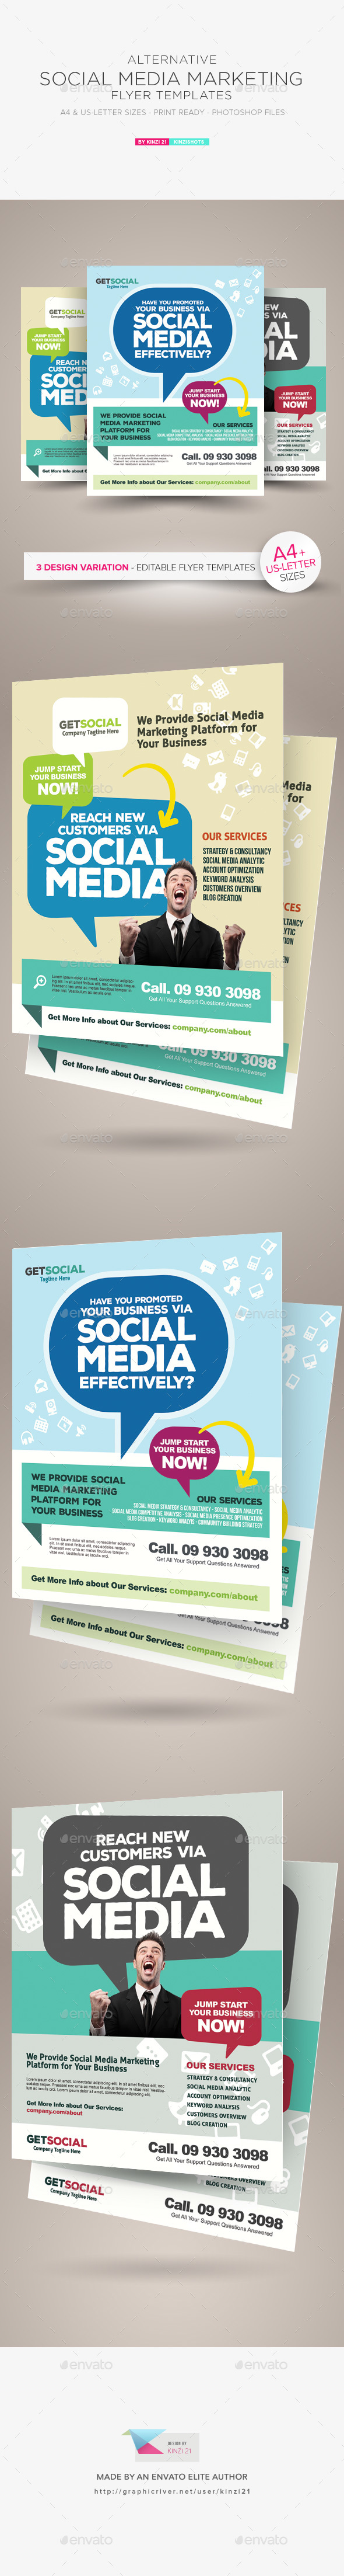 Social Media Marketing Flyer Templates - Corporate Flyers